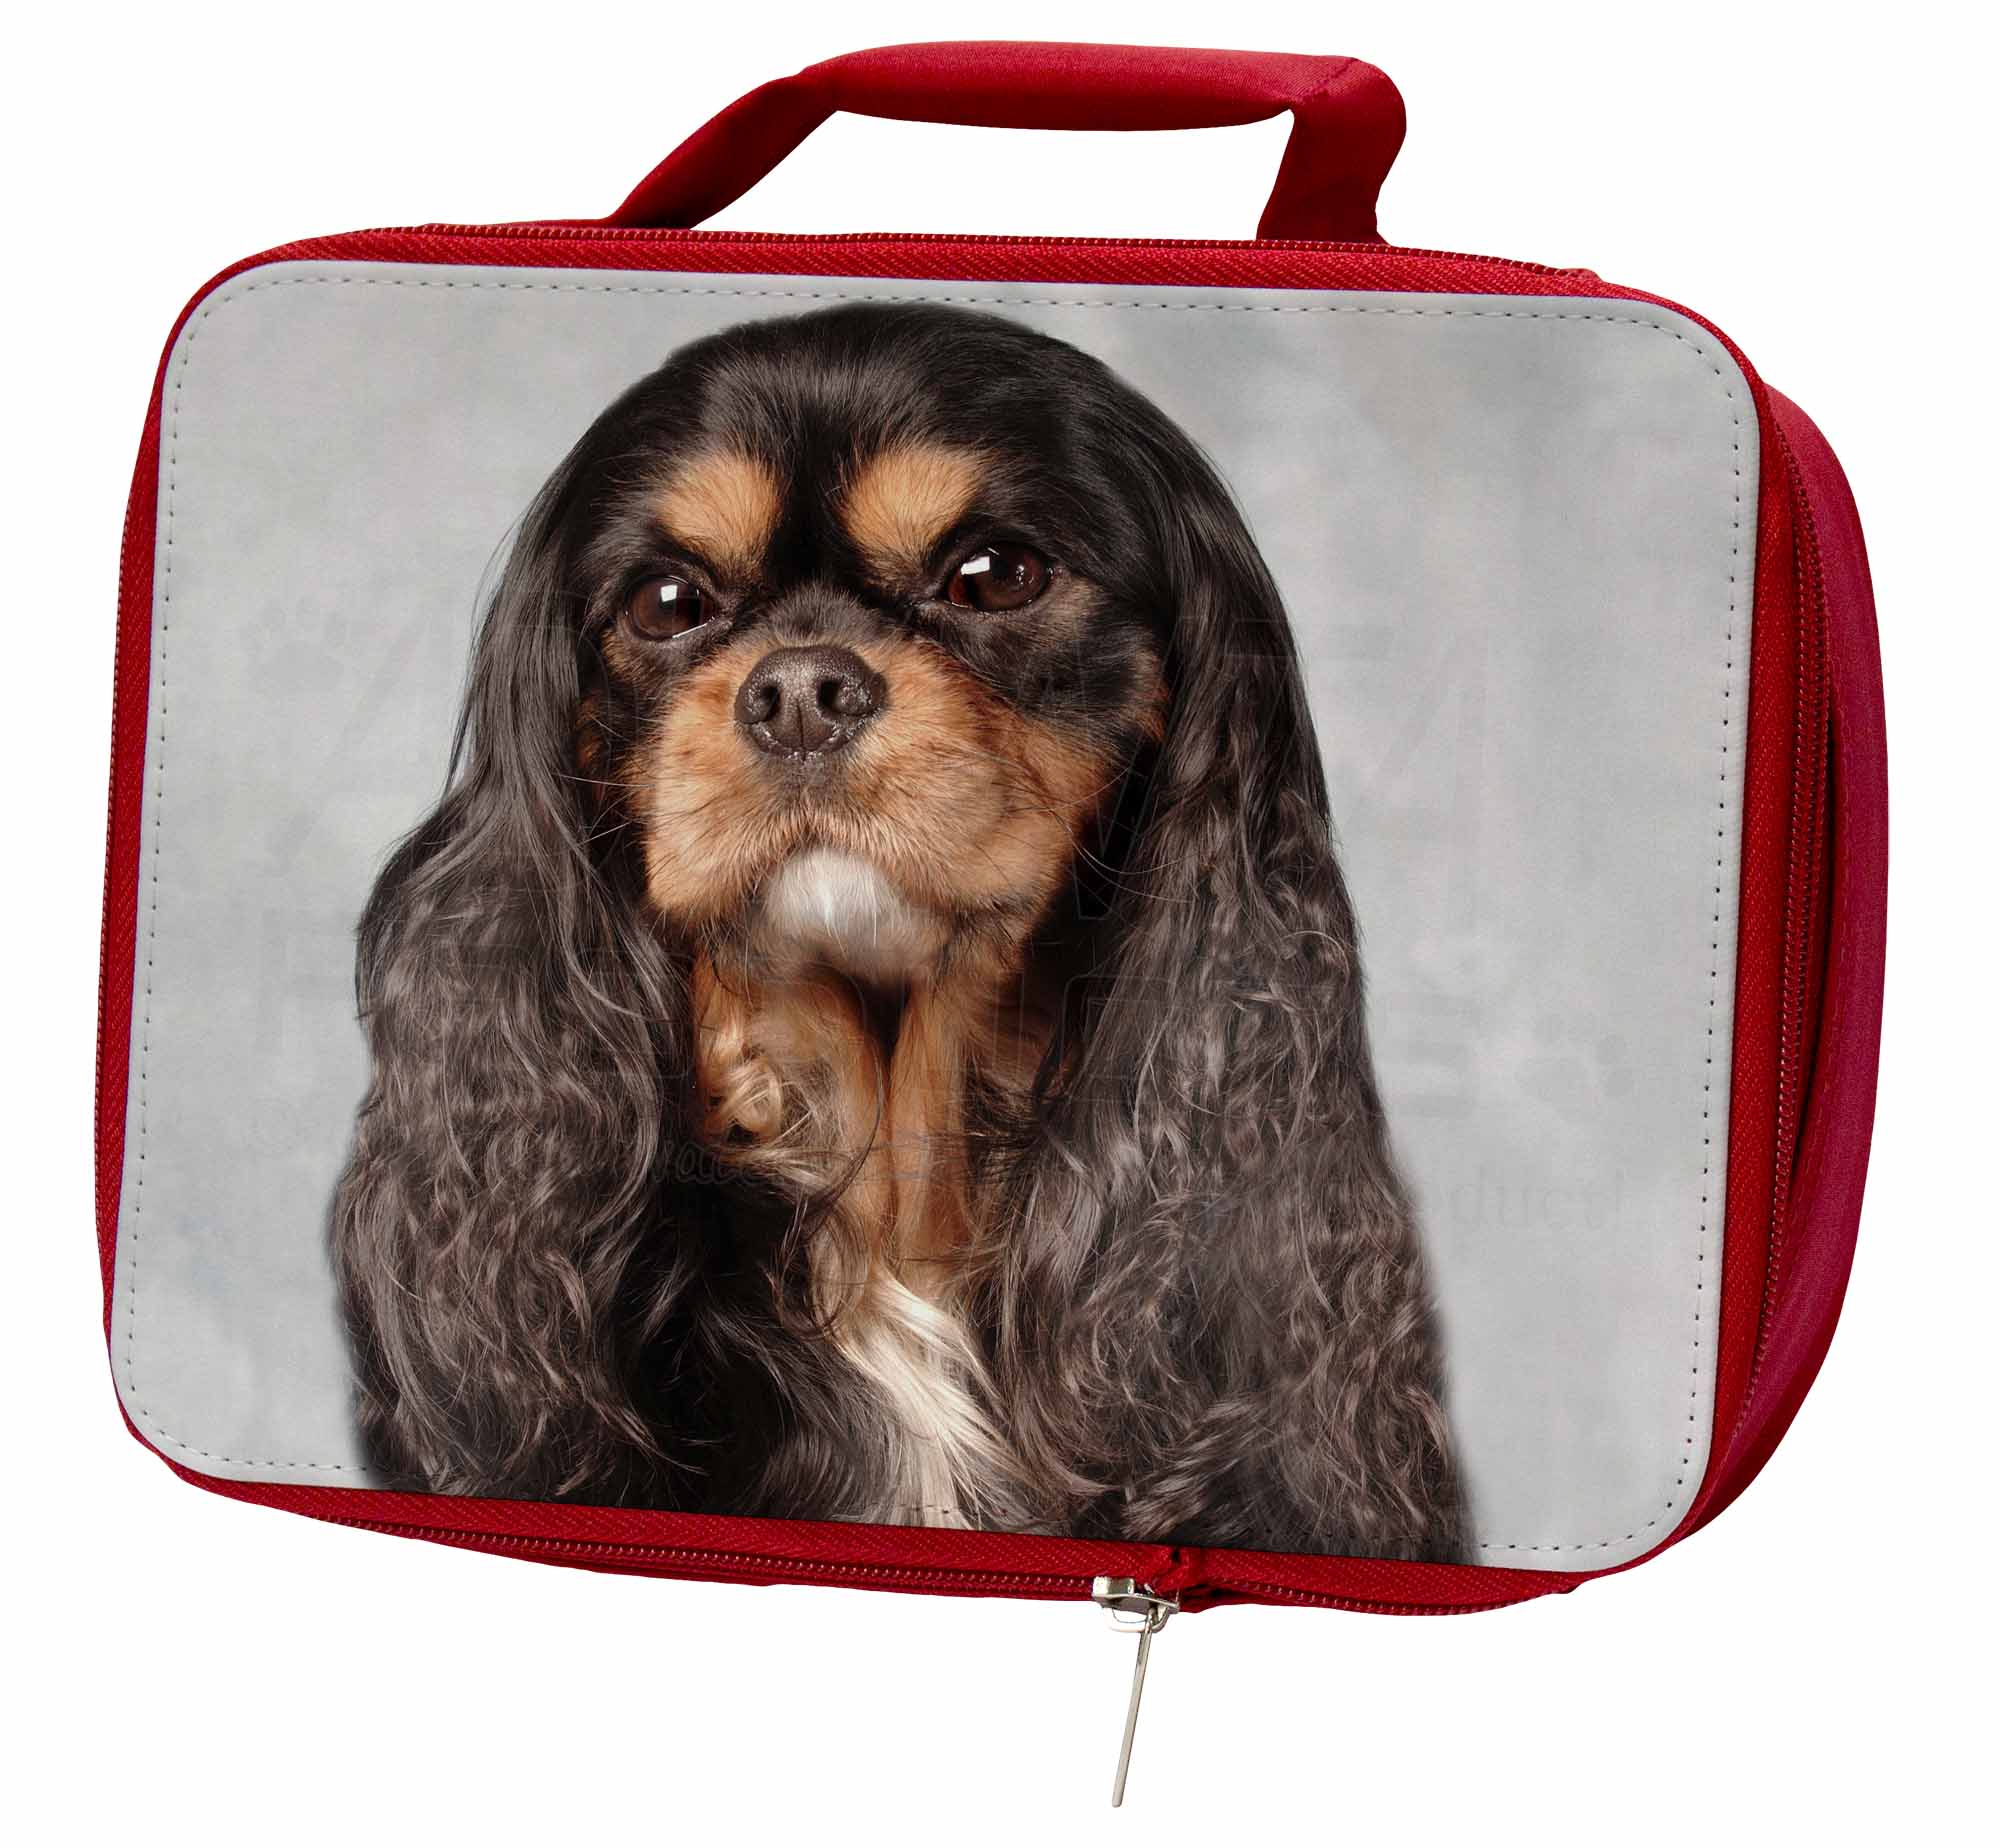 Black and Tan King Charles Spaniel Insulated Red School Lunch Box//Pi AD-SKC2LBR